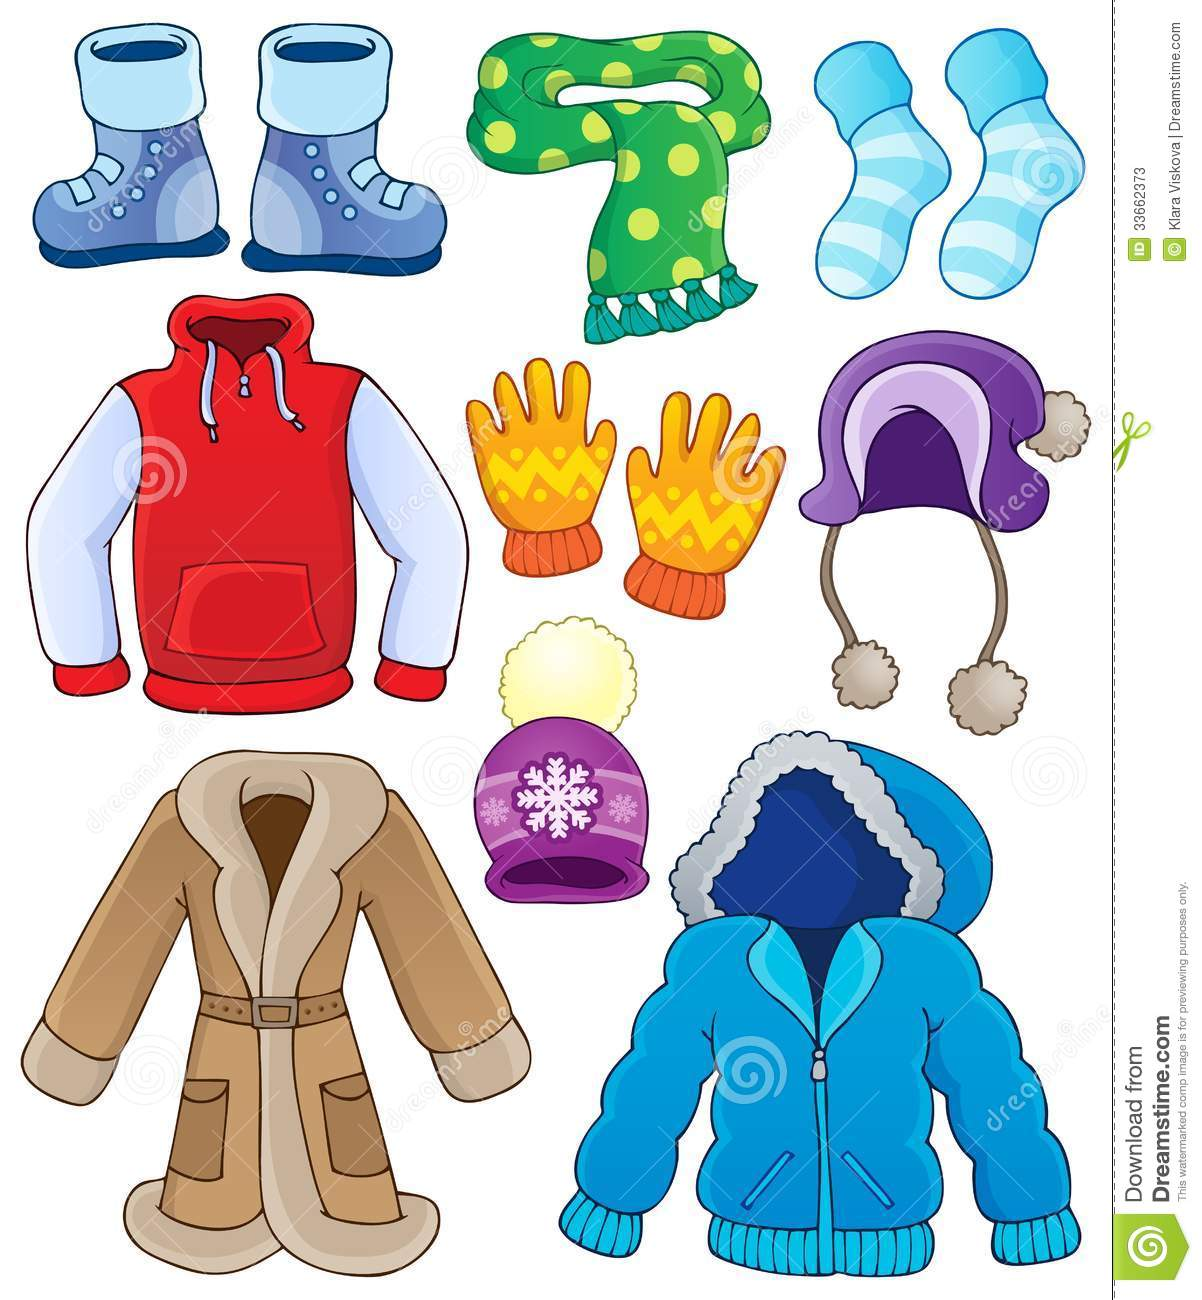 Clothers clipart - Clipground